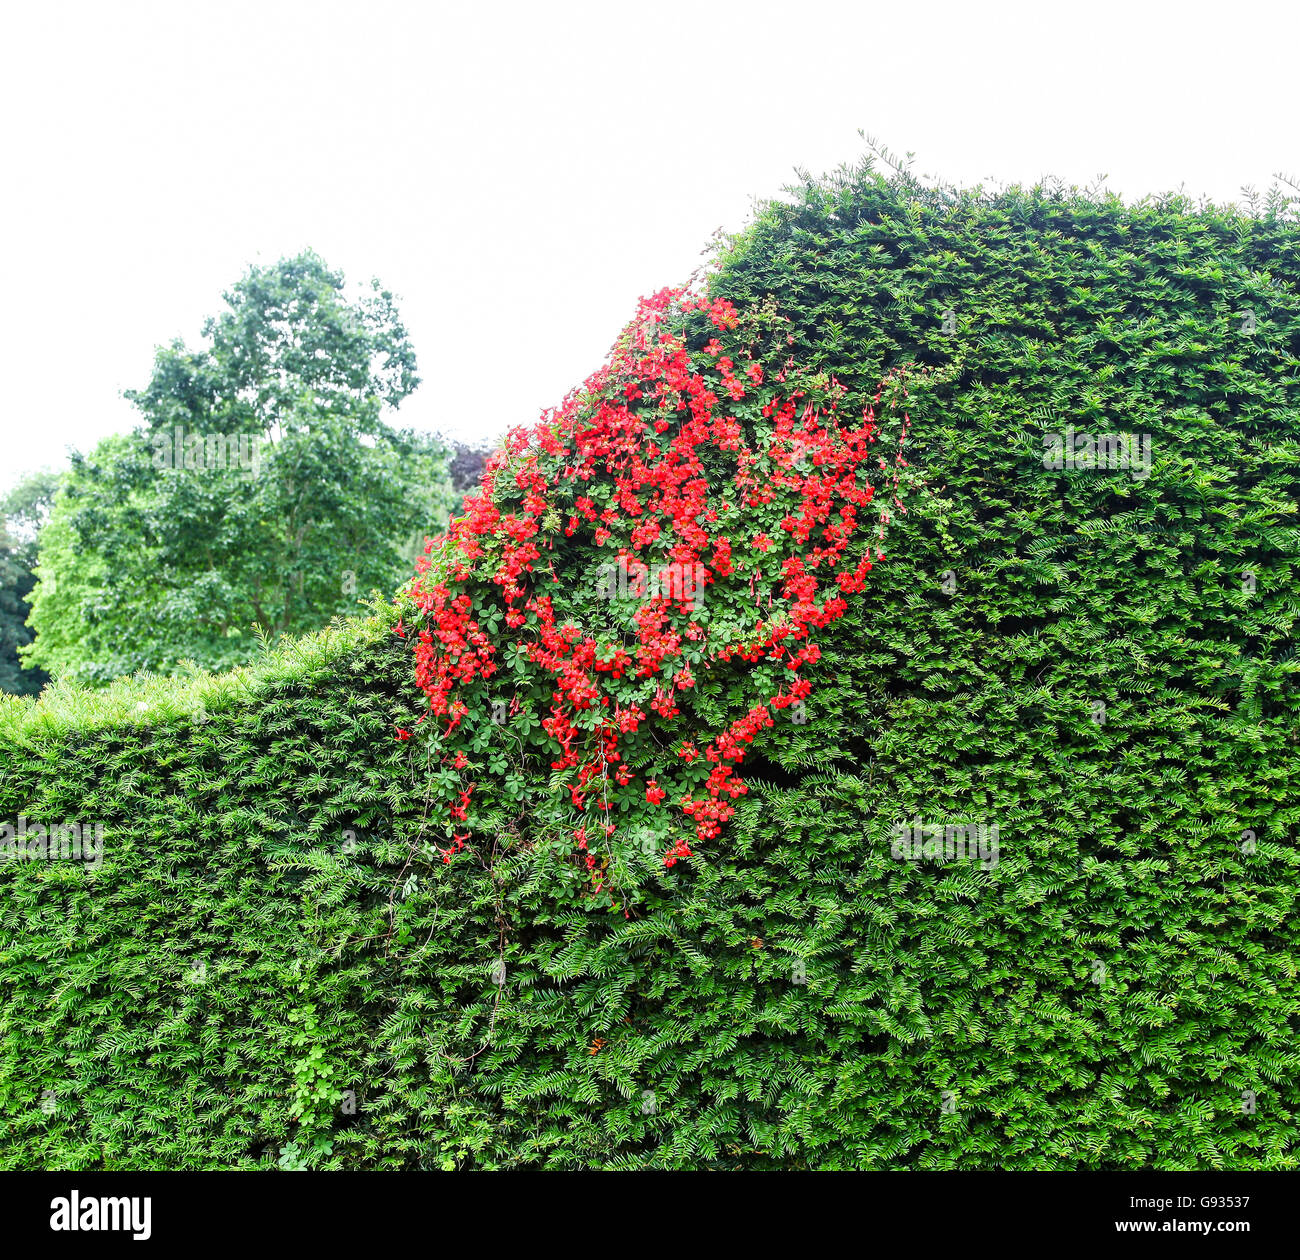 The red flowers of a Flame Creeper (Tropaeolum speciosum) growing up through a conifer hedge - Stock Image